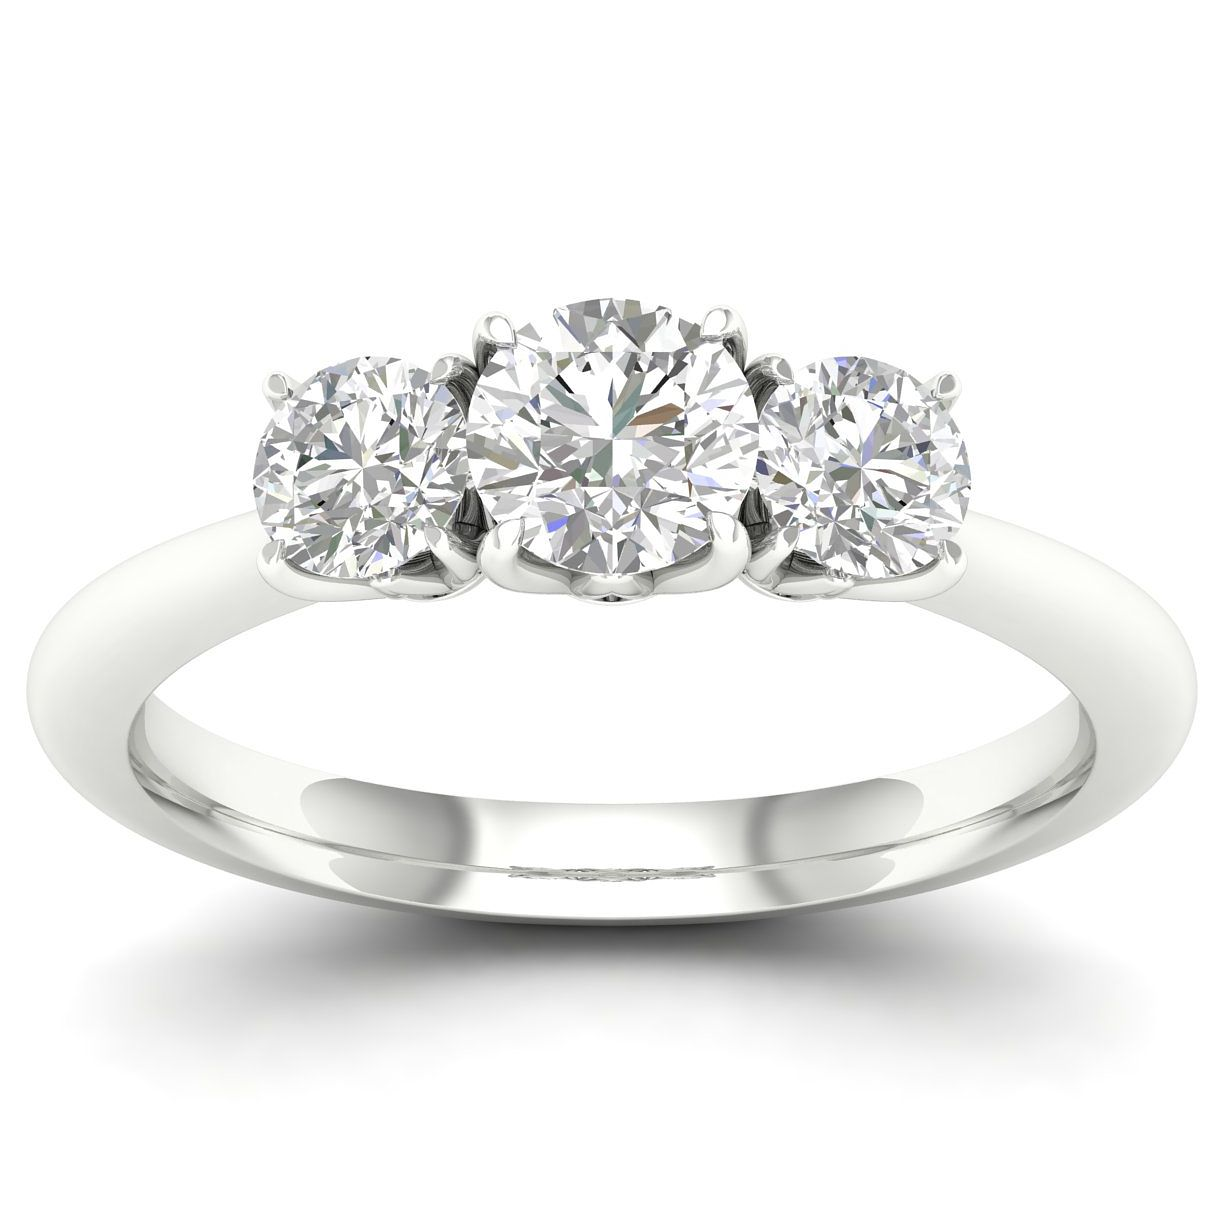 18ct White Gold & Platinum 3/4ct Diamond Three Stone Ring - Product number 4215621